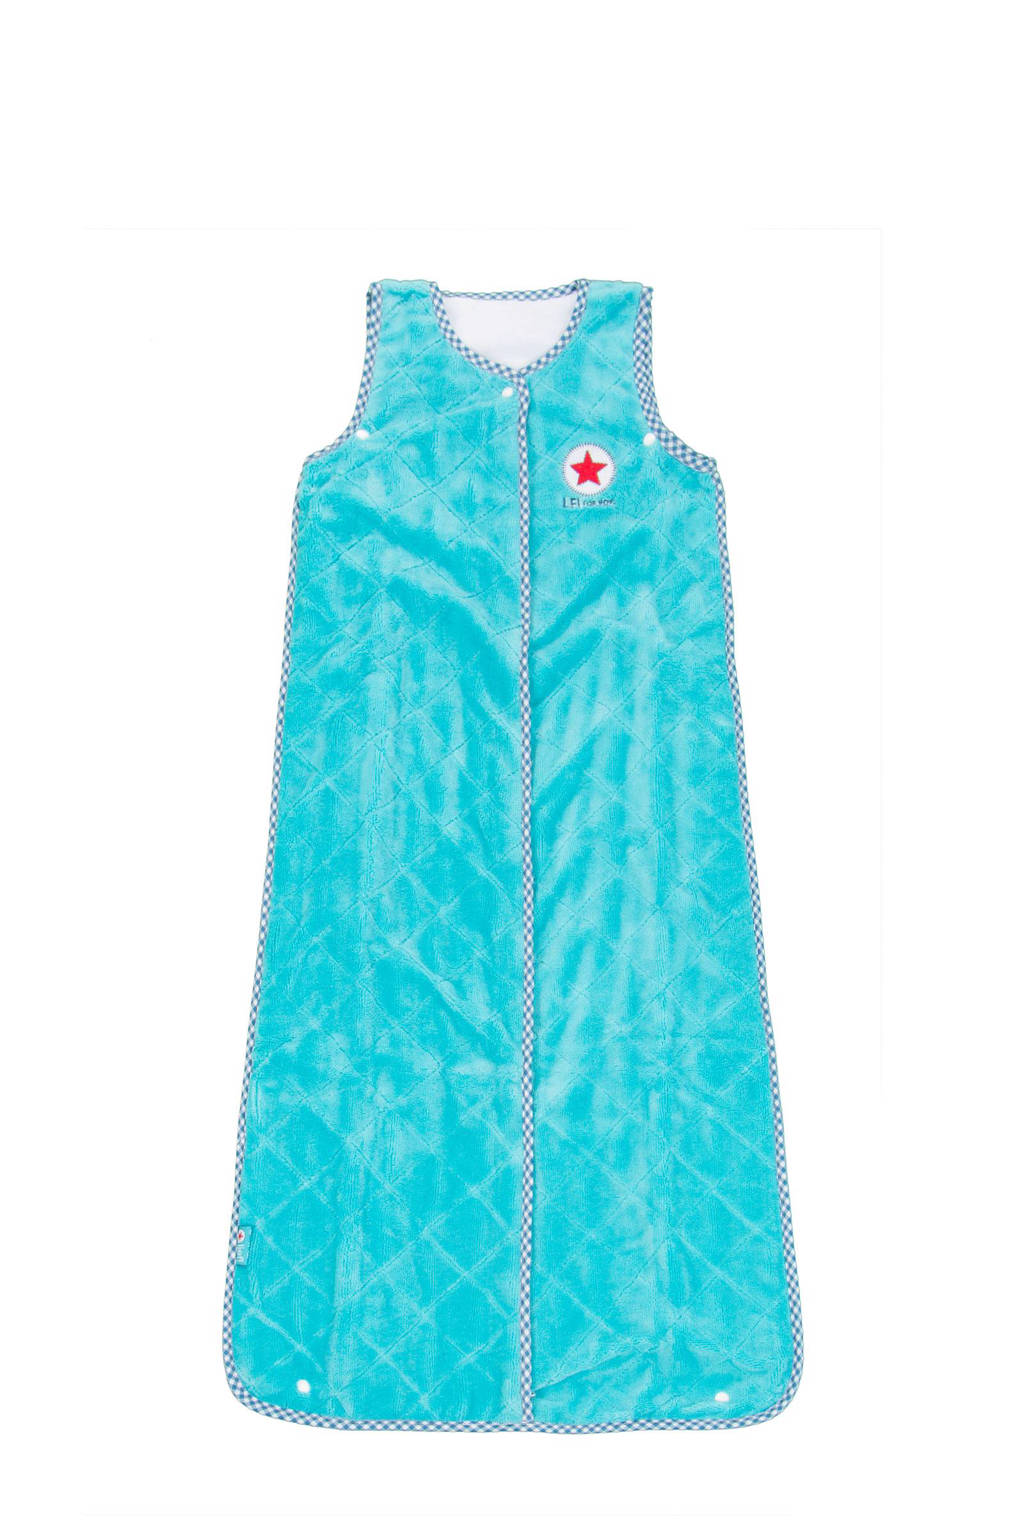 lief! baby slaapzak 0-24 mnd turquoise, Turquoise